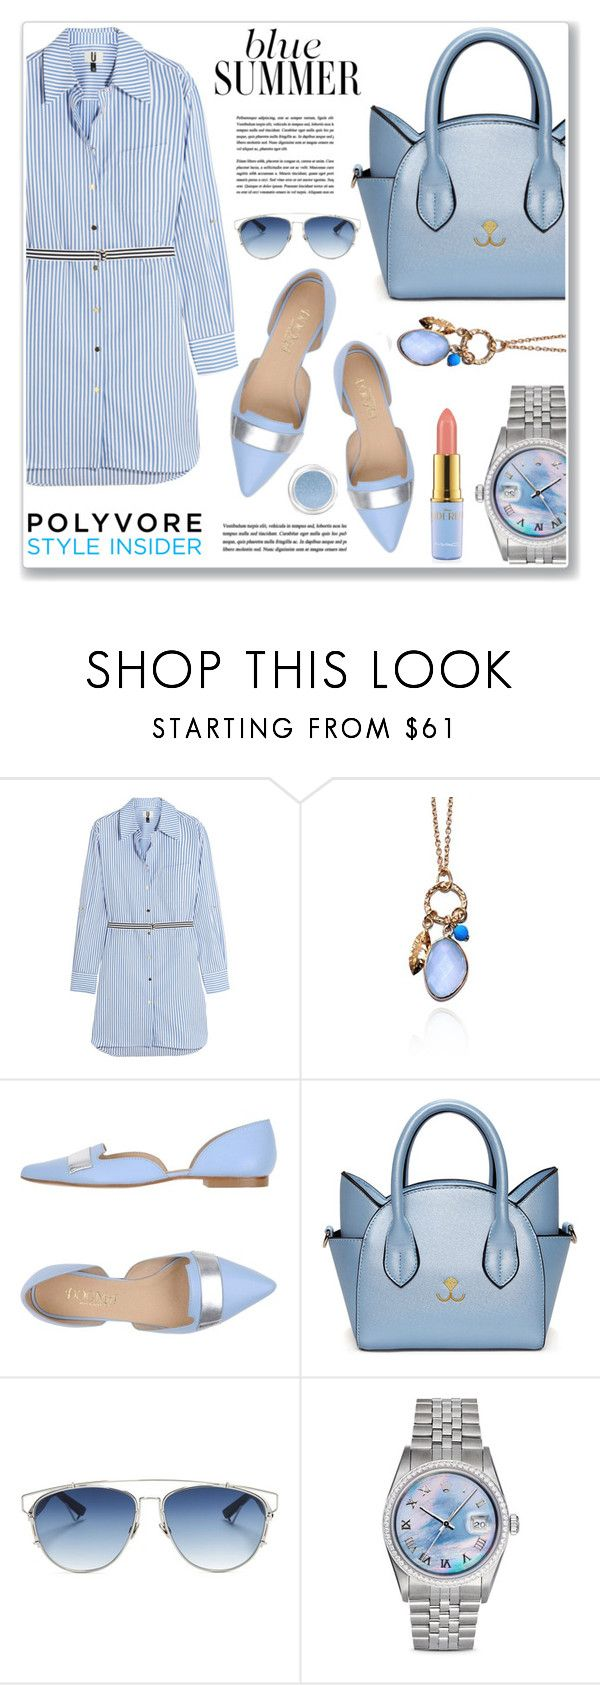 """blue shirt dress"" by nanawidia ❤ liked on Polyvore featuring Topshop Unique, Argento Vivo, Dogma, Christian Dior, Rolex, Disney and Givenchy"